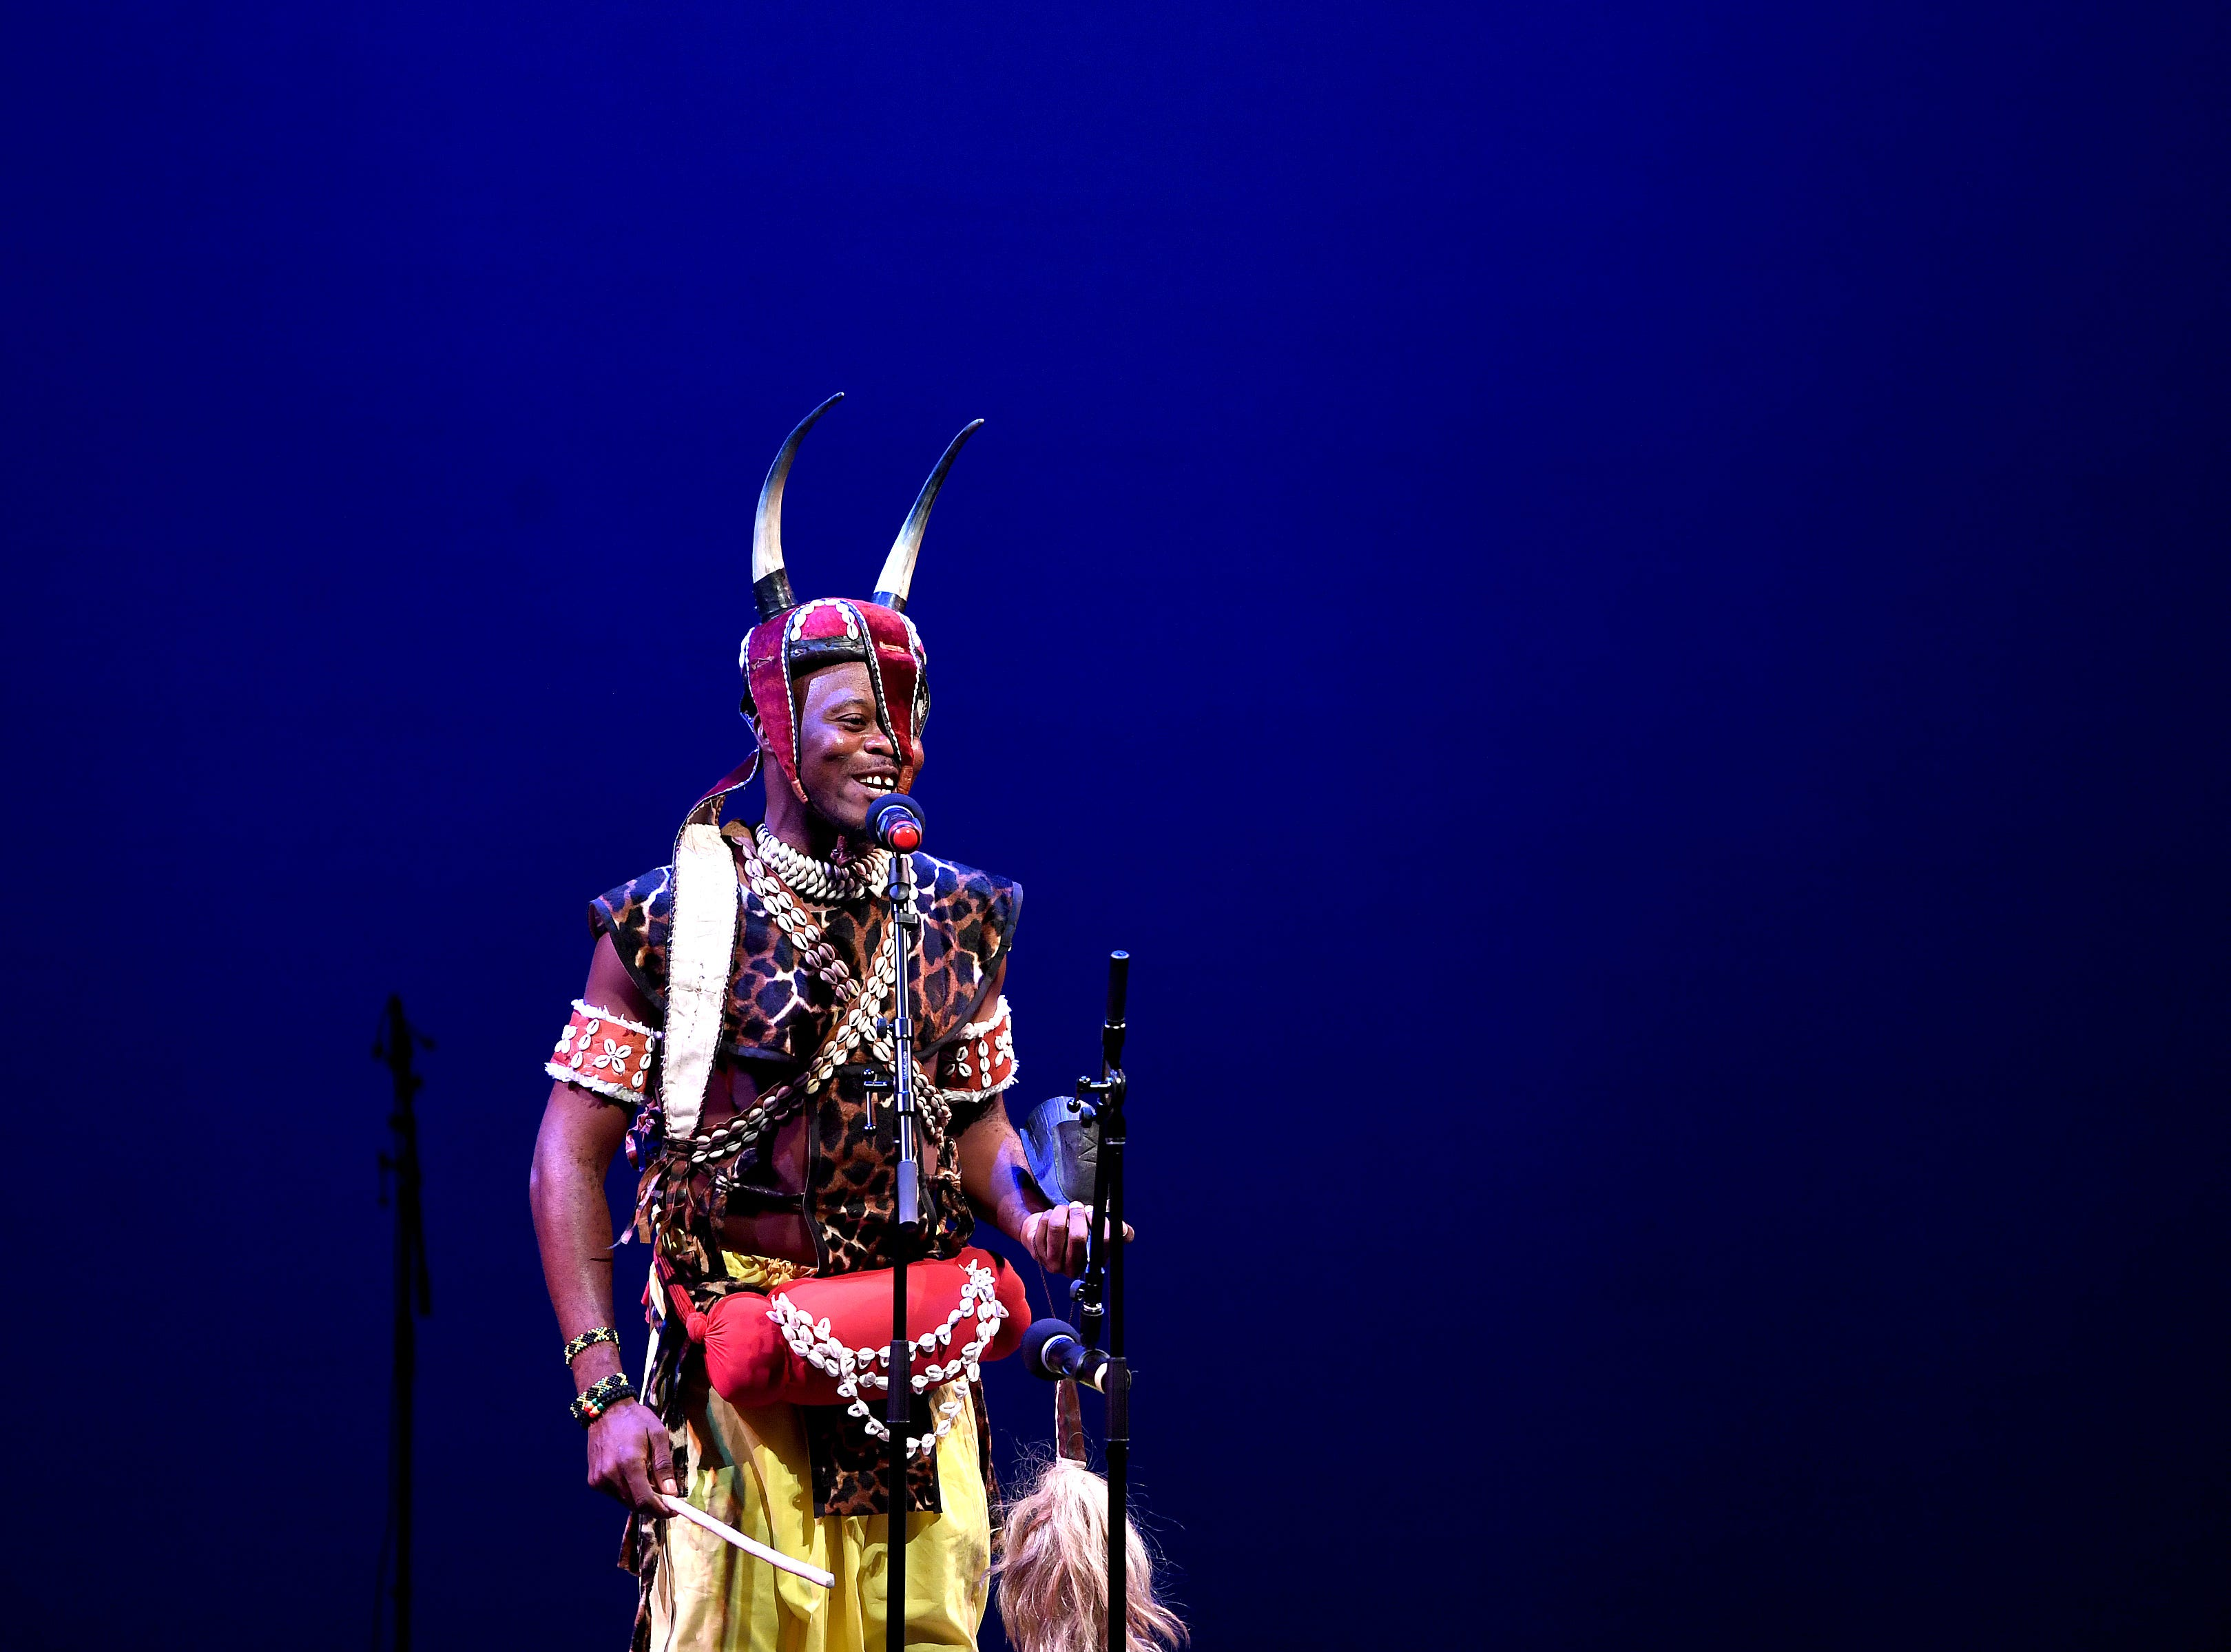 A member of the Nkrabea Dance Ensemble represents the country of Ghana in a performance on stage during a Folkmoot Festival performance at the Diana Wortham Theatre on Friday, Aug. 27, 2018.